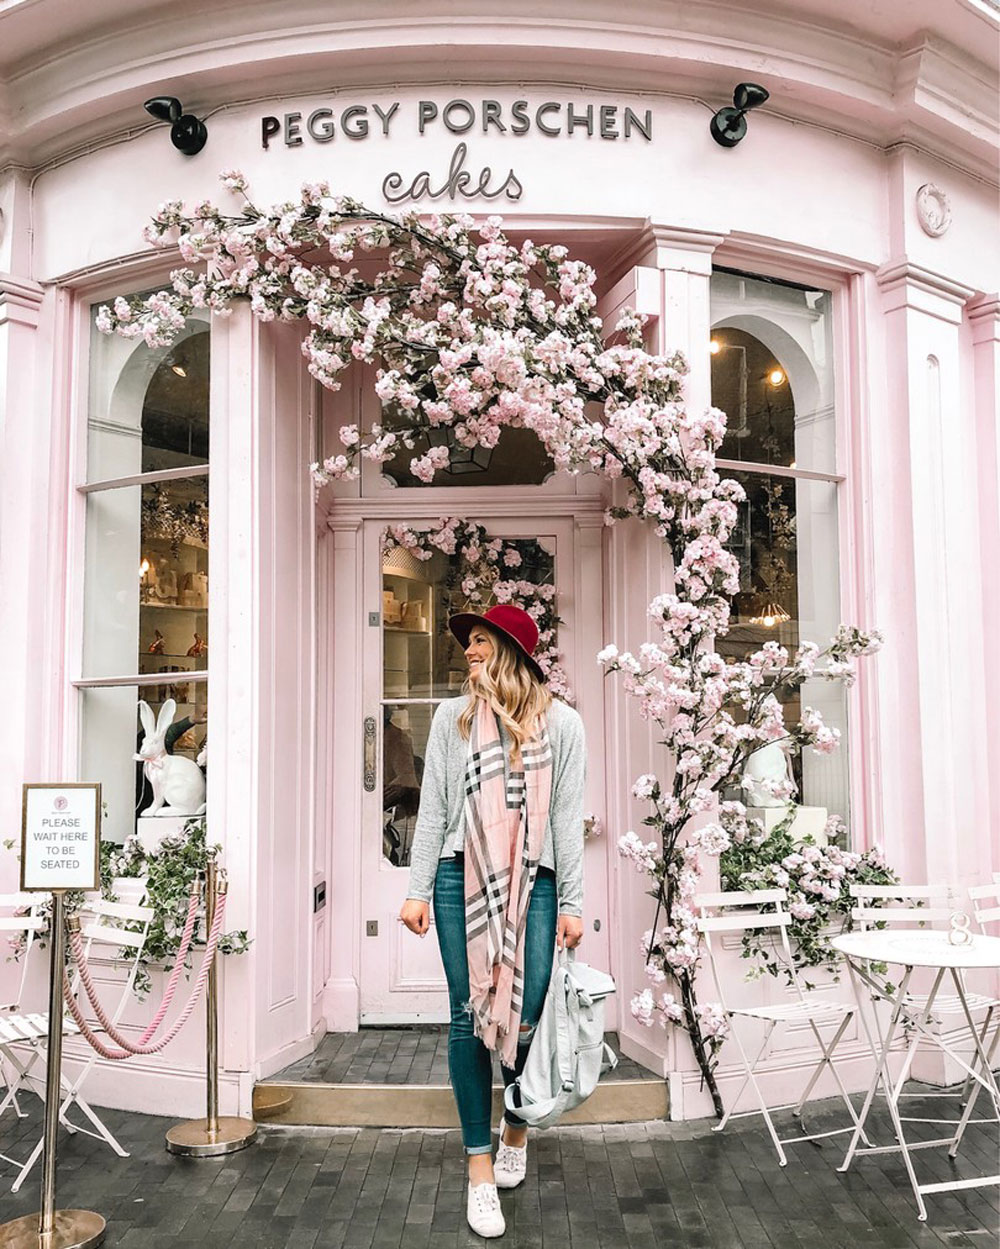 Peggy Porschen Cakes is a popular London Instagram Location!